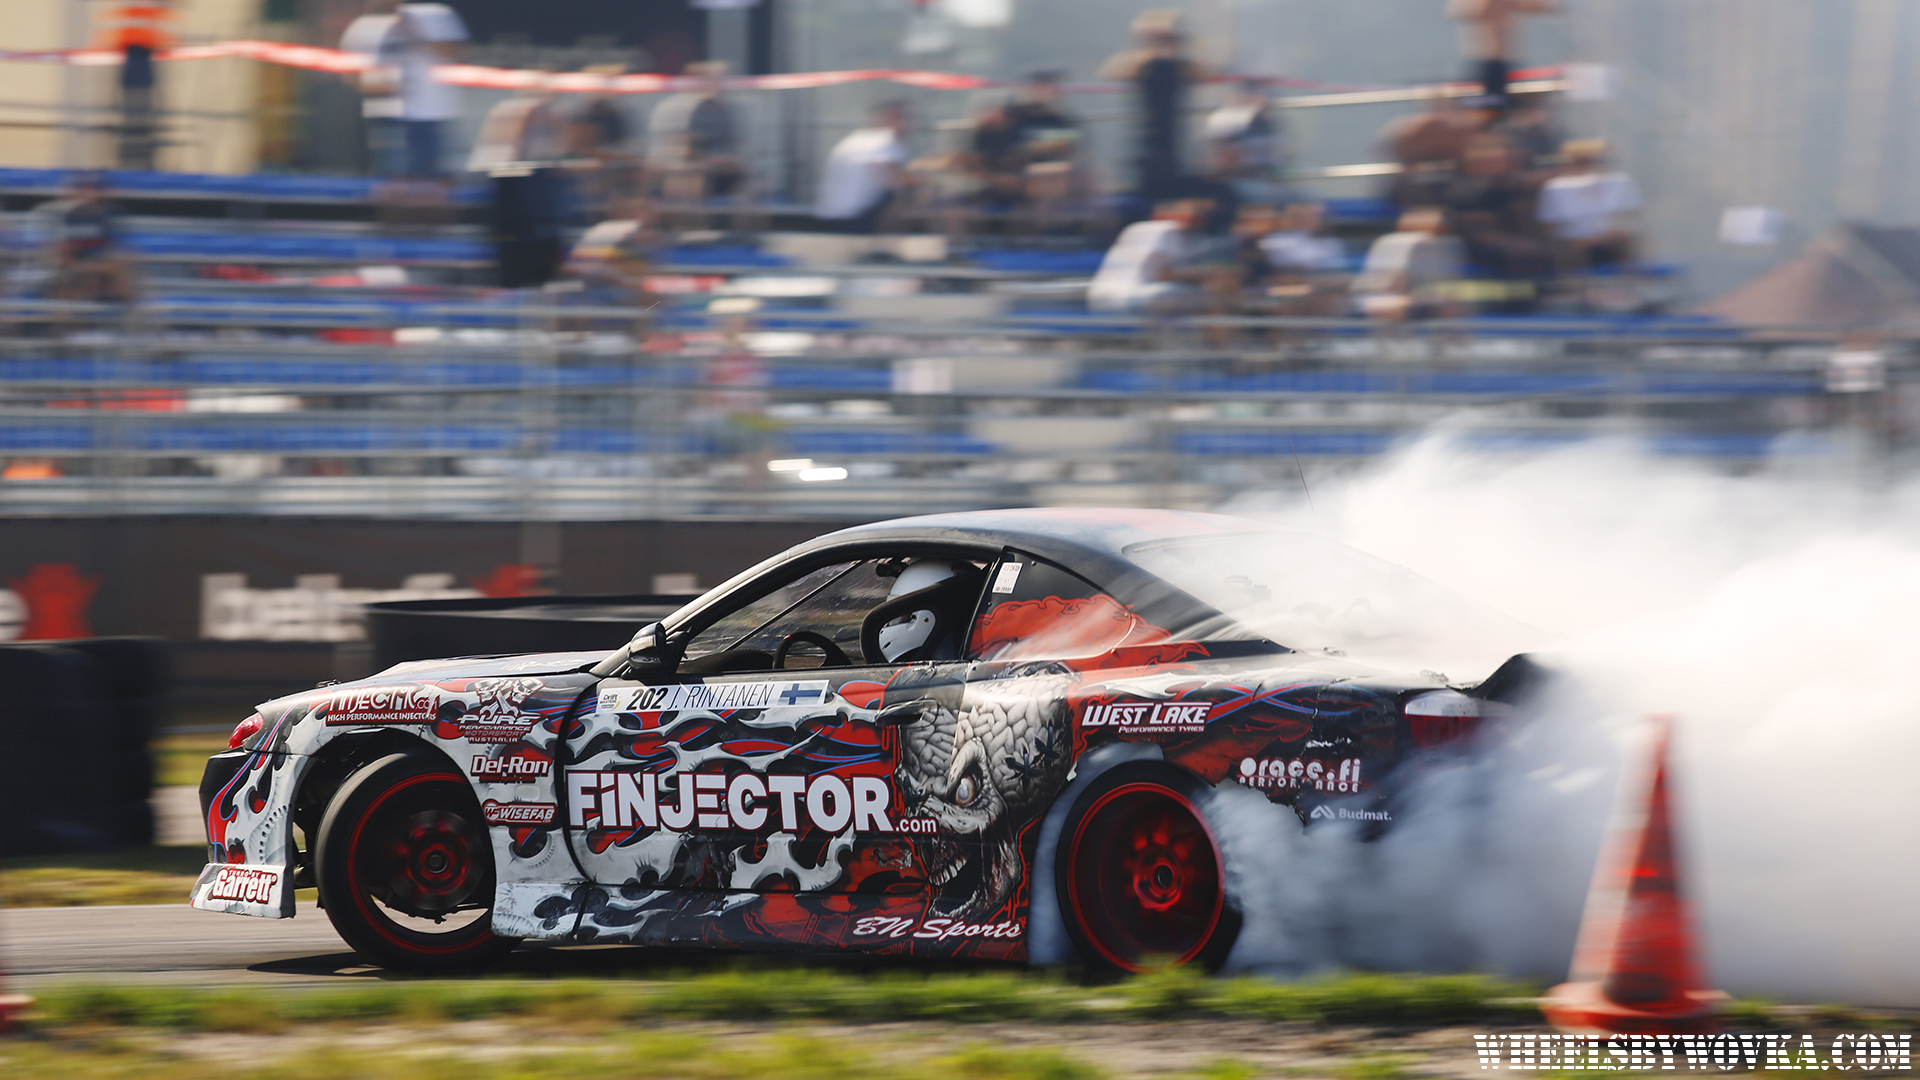 drift-masters-gp-latvia-2018-by-wheelsbywovka-2